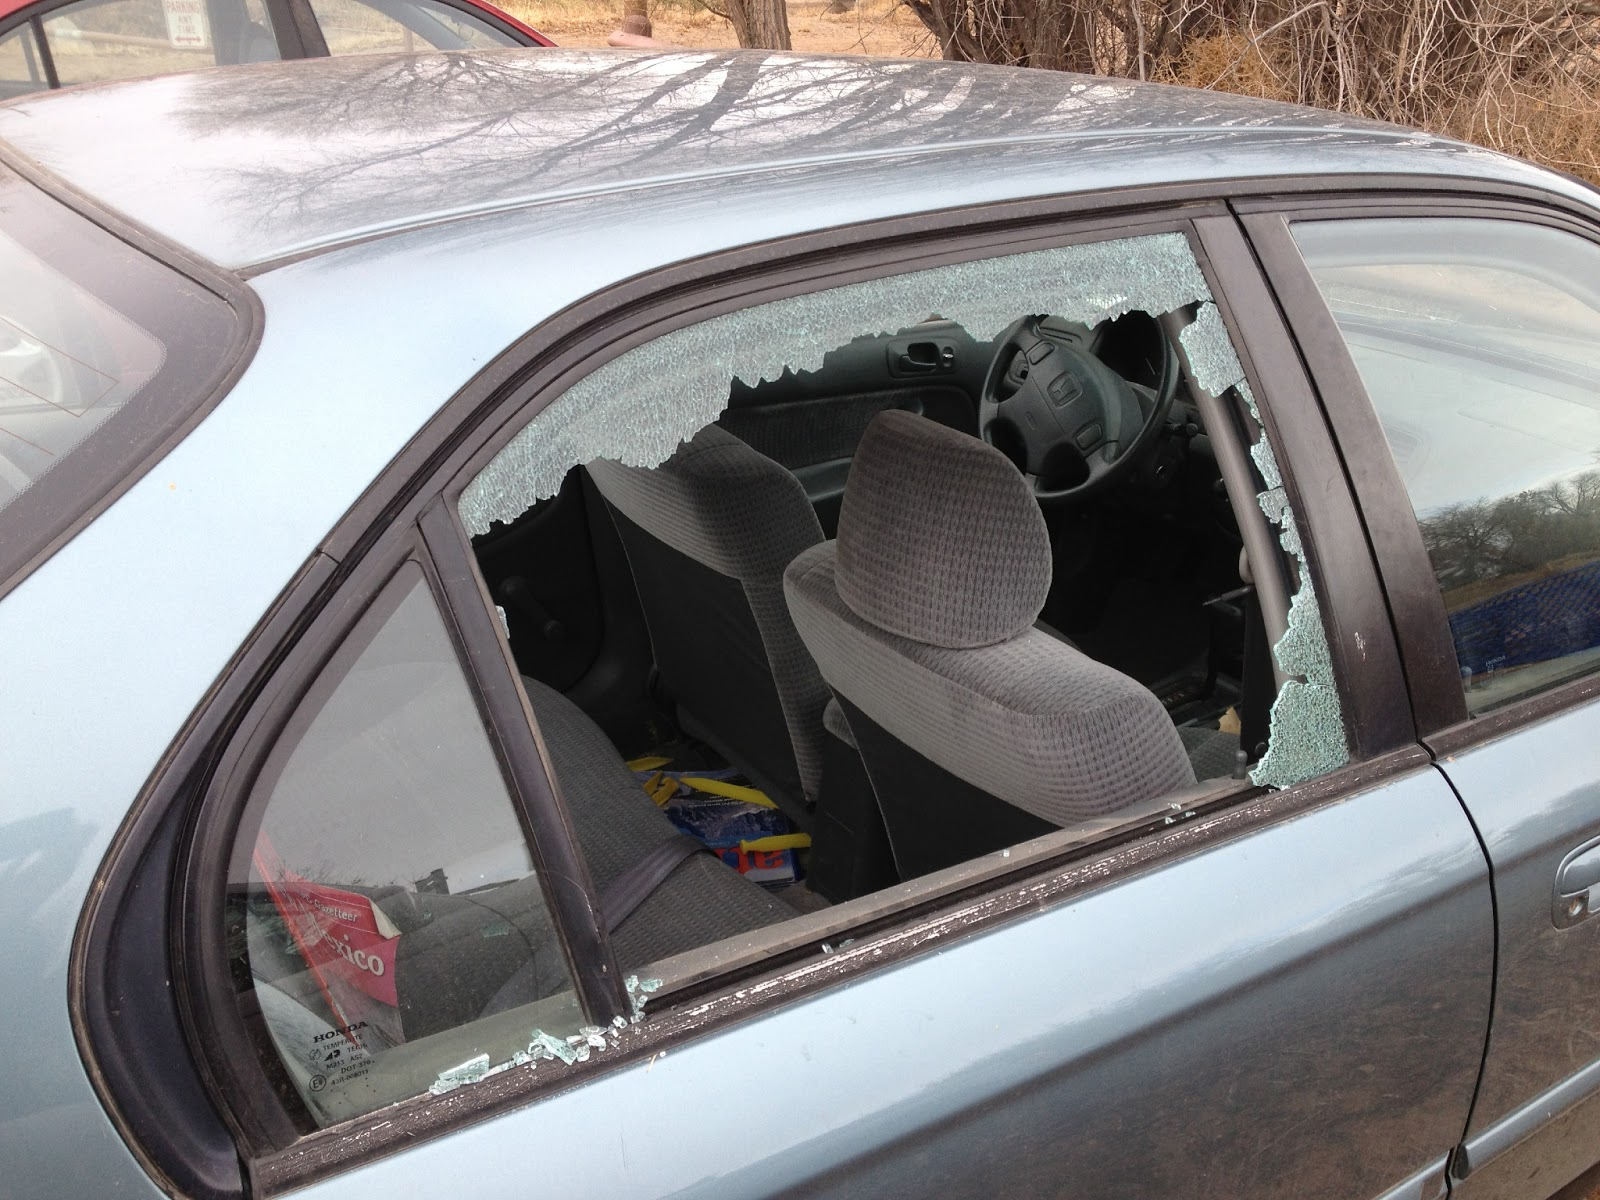 Solana Windscreens Offers Affordable Side Window Replacement Services